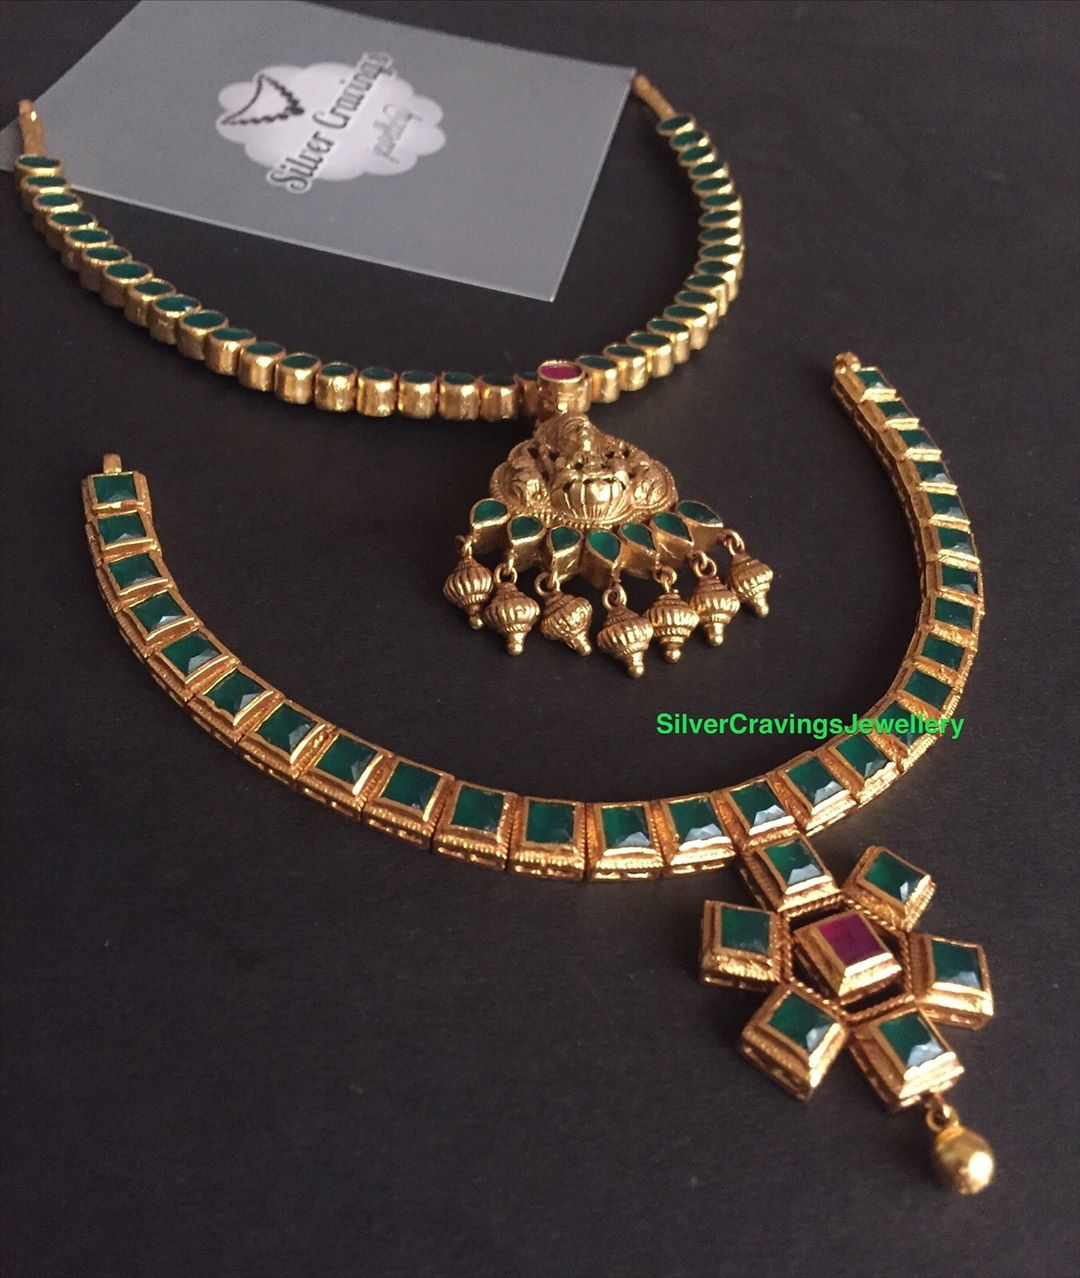 Emerald Cutstone Necklaces From Silver Cravings Jewellery